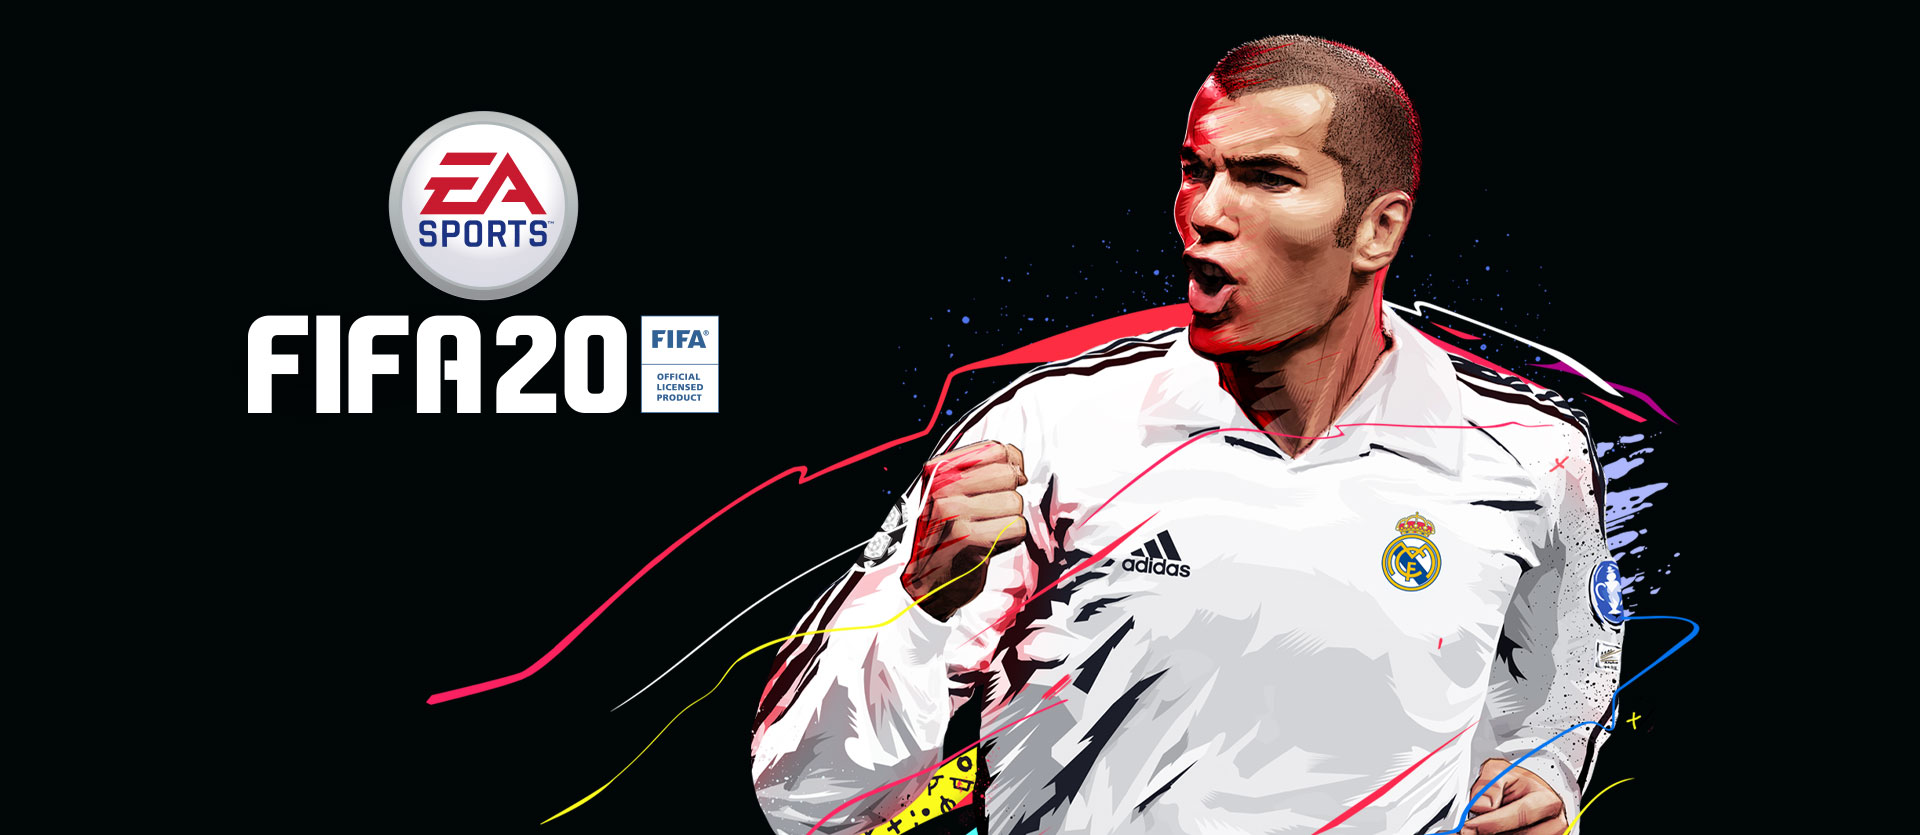 EA Sports logo, FIFA 20, FIFA Official Licensed Product, front view of Zinedine Zidane with colourful paint splatter behind him